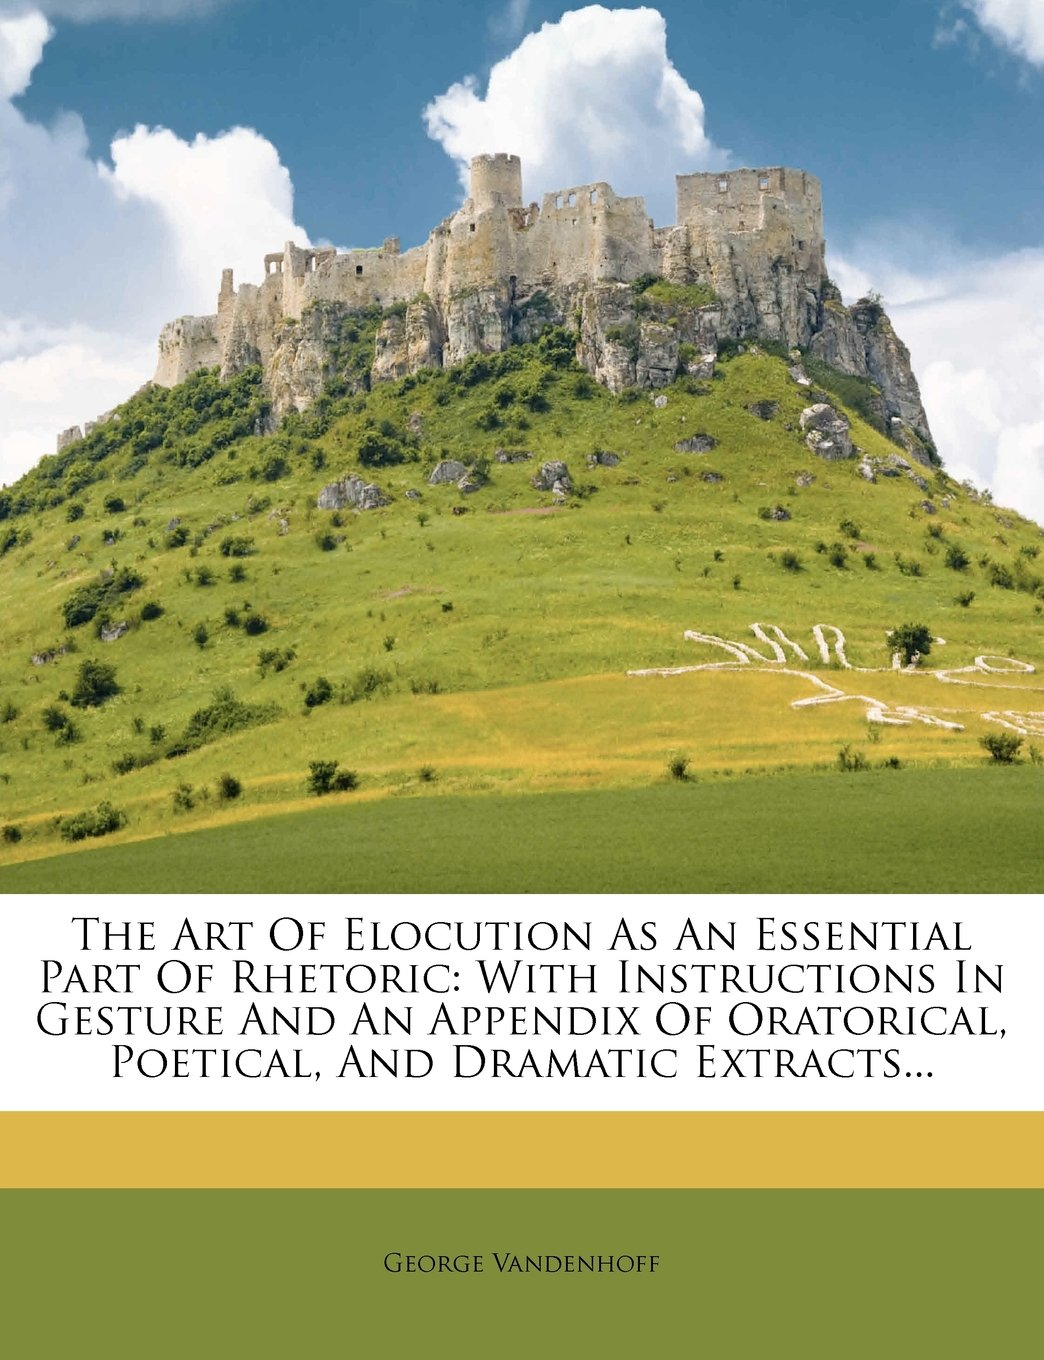 Download The Art Of Elocution As An Essential Part Of Rhetoric: With Instructions In Gesture And An Appendix Of Oratorical, Poetical, And Dramatic Extracts... pdf epub